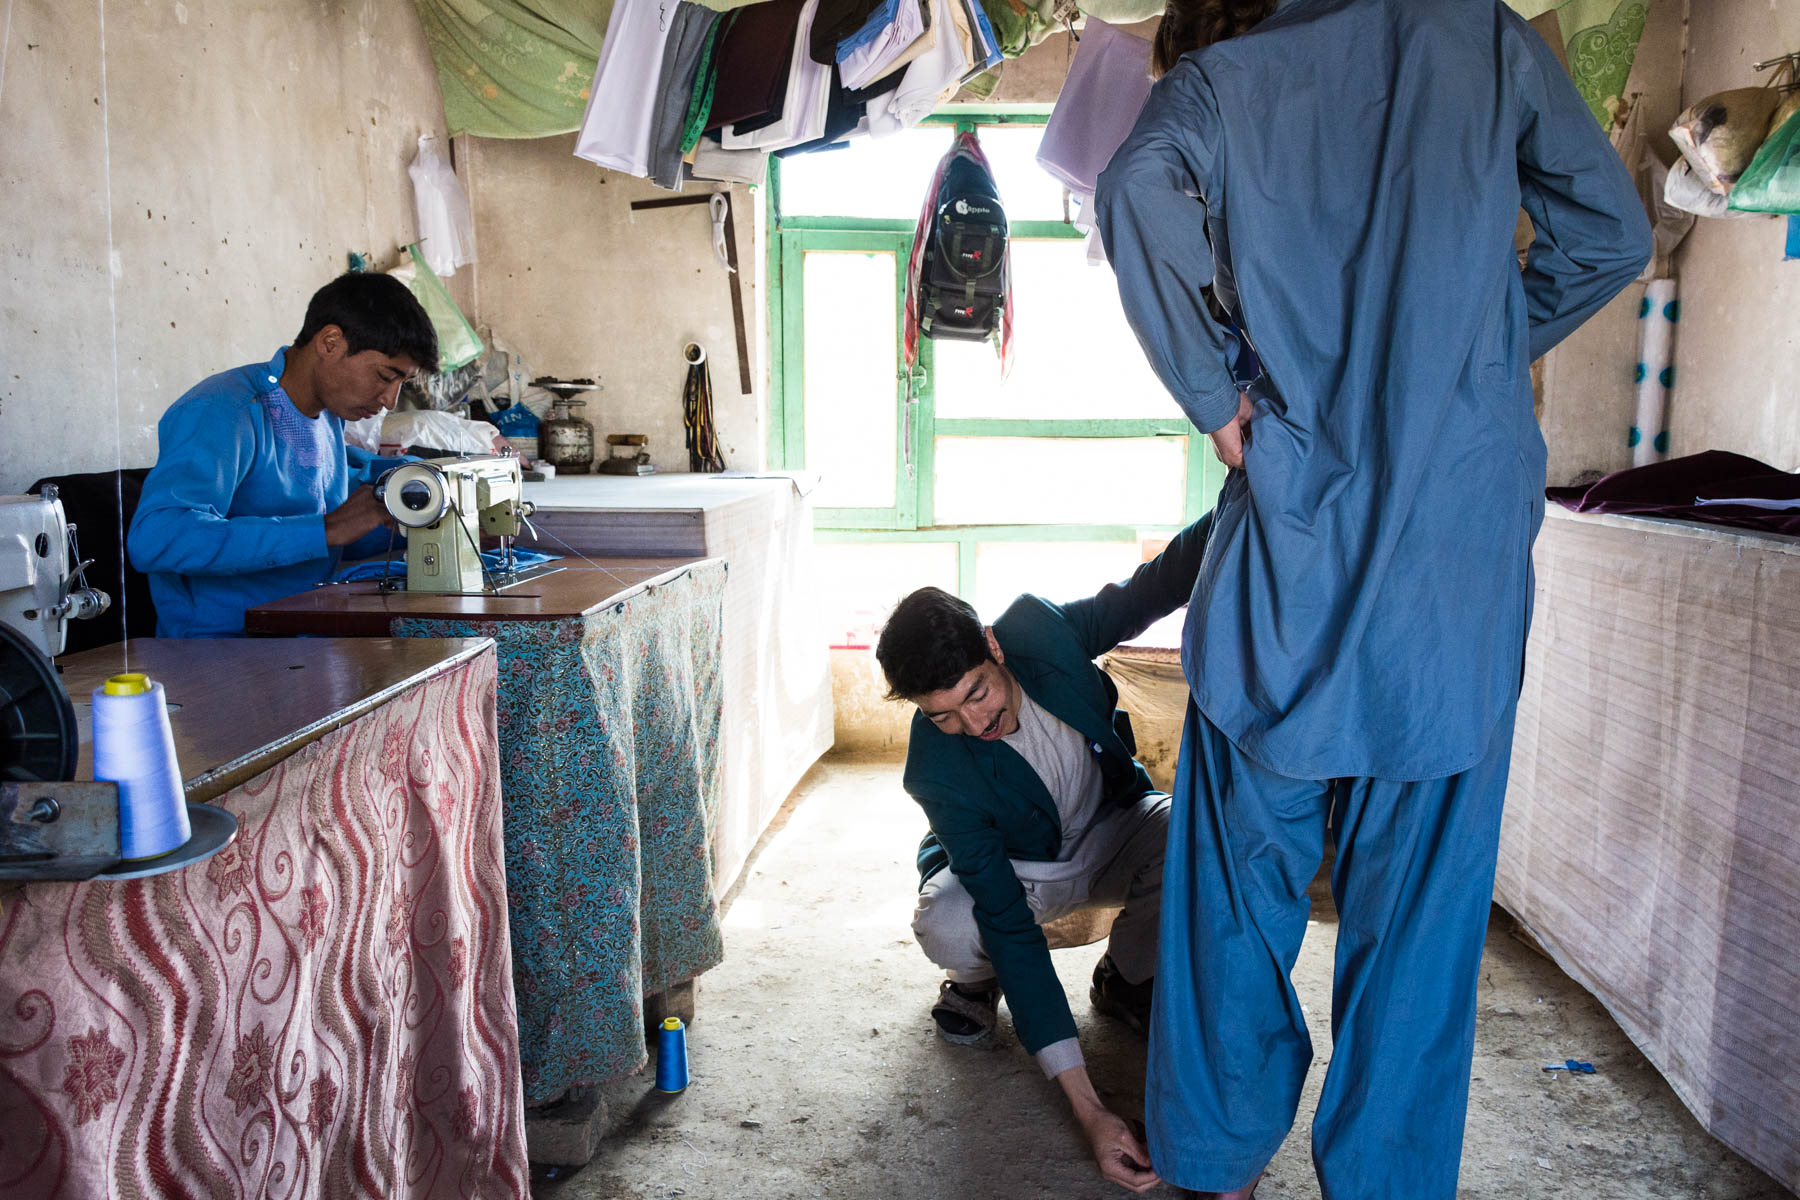 How much does one year of travel in Asia cost? - Getting new clothes in Bamiyan, Afghanistan - Lost With Purpose